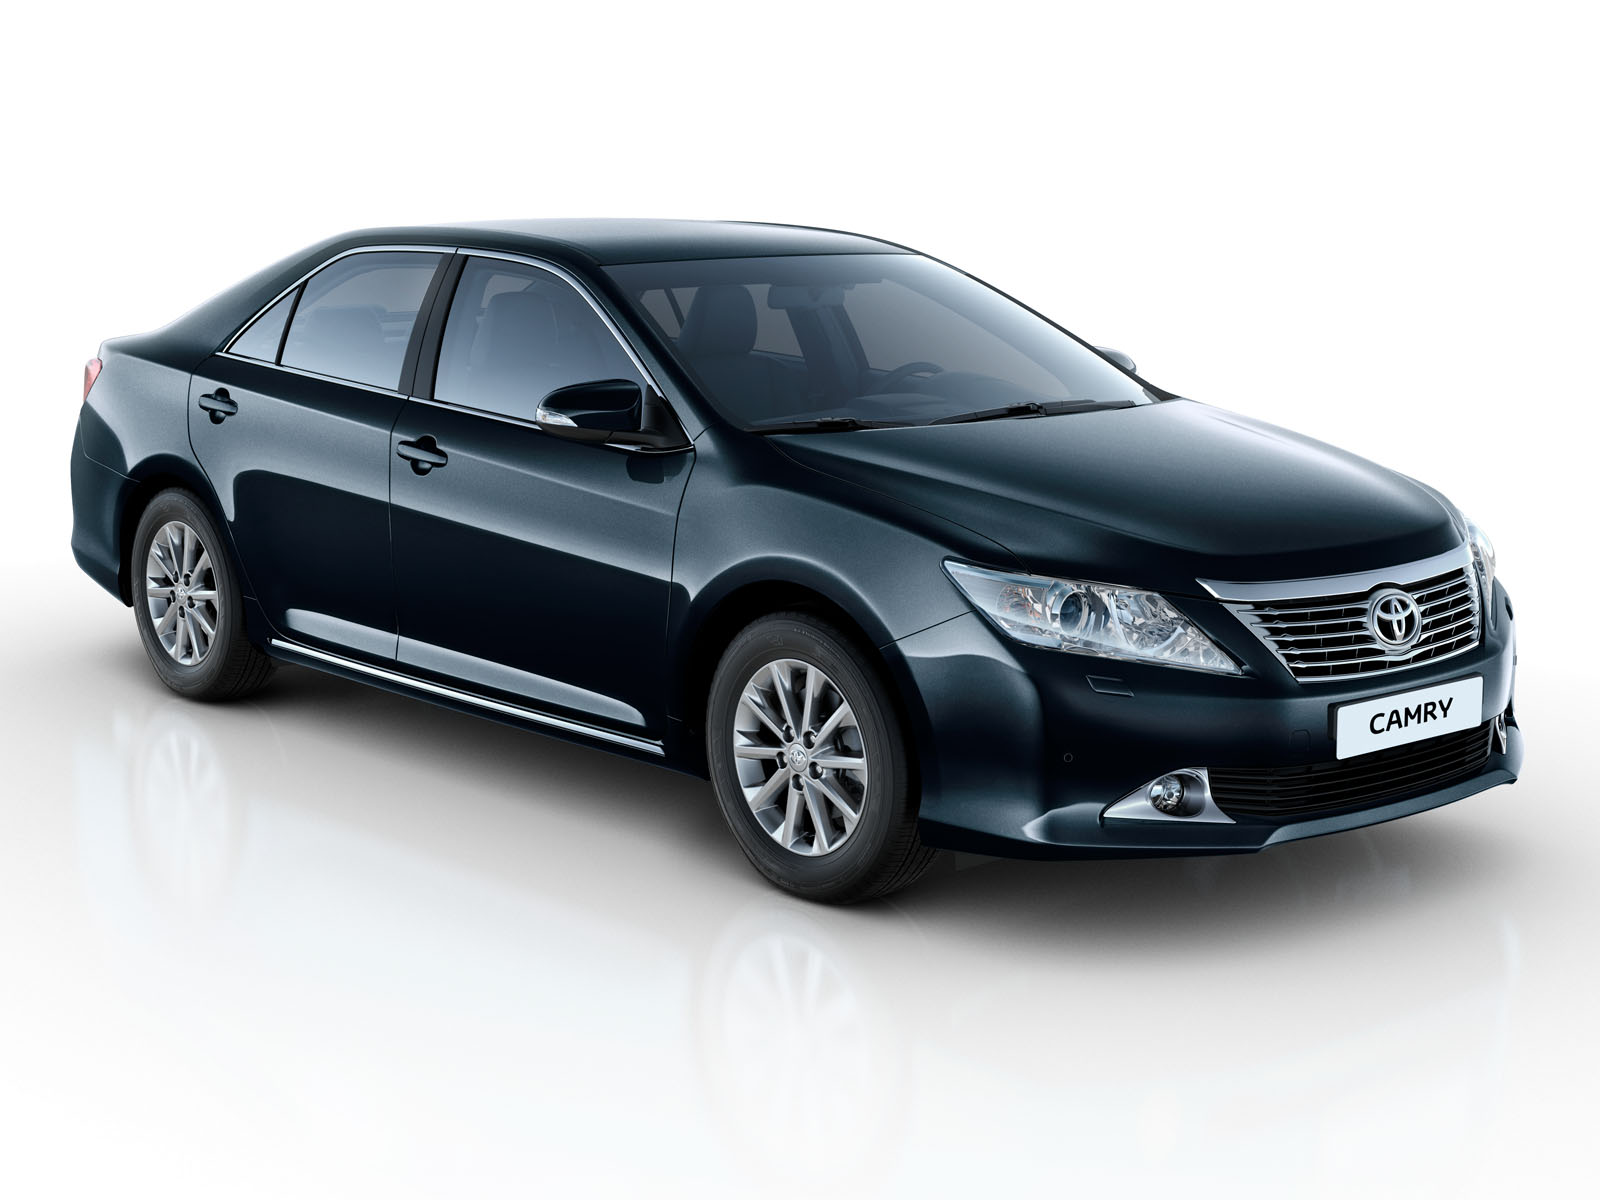 2012 toyota camry vii pictures information and specs auto. Black Bedroom Furniture Sets. Home Design Ideas